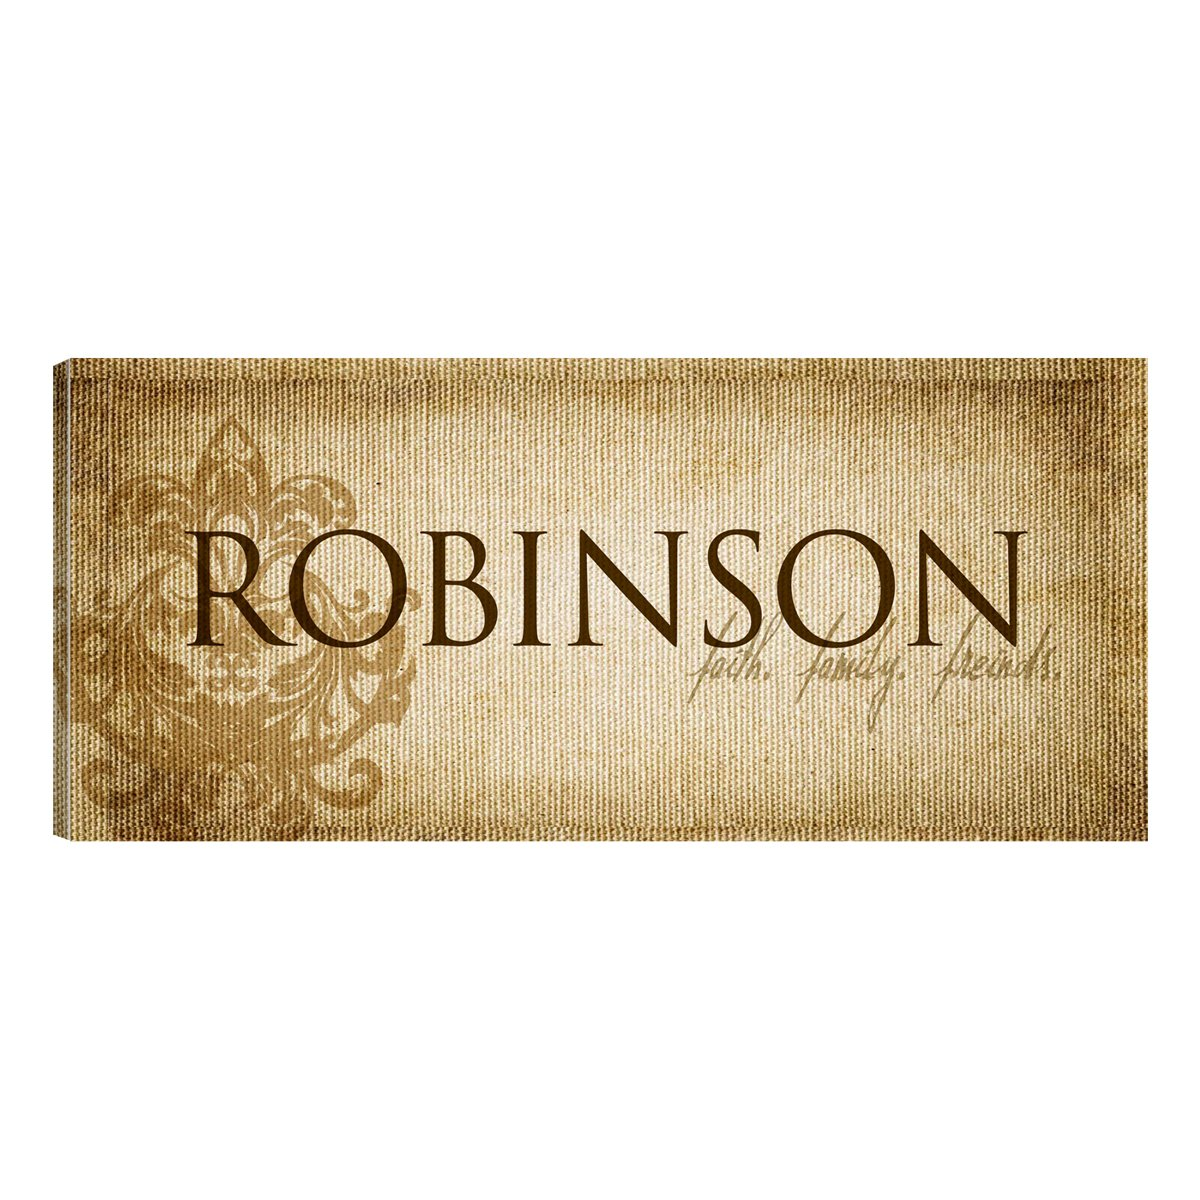 Amazon.com: A Gift Personalized Personalized Canvas Sign Wall Decor ...